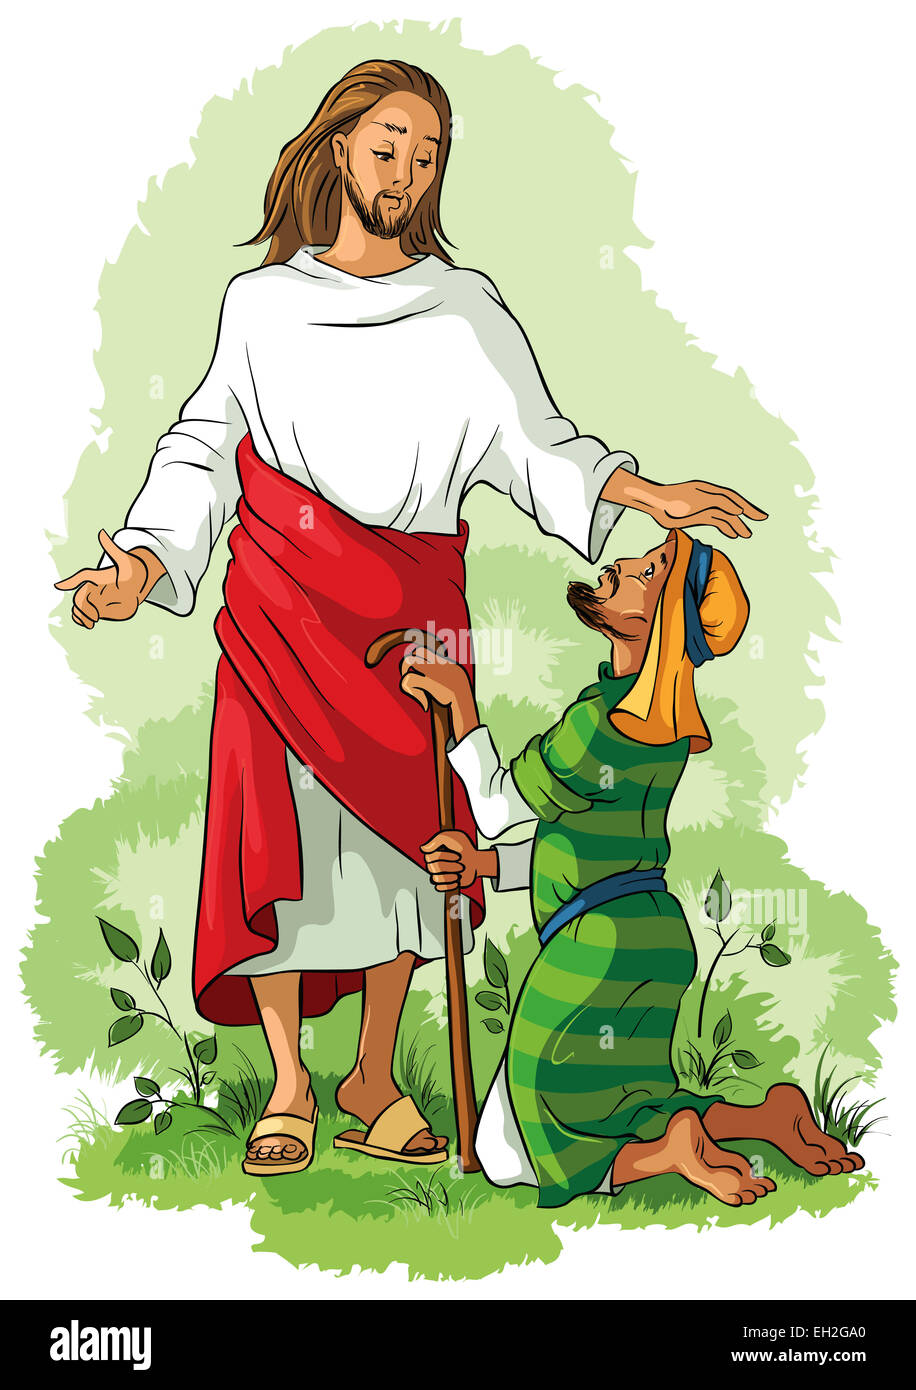 Jesus healing a lame man. Cartoon christian colored illustration of Events in Jesus' Life - Stock Image